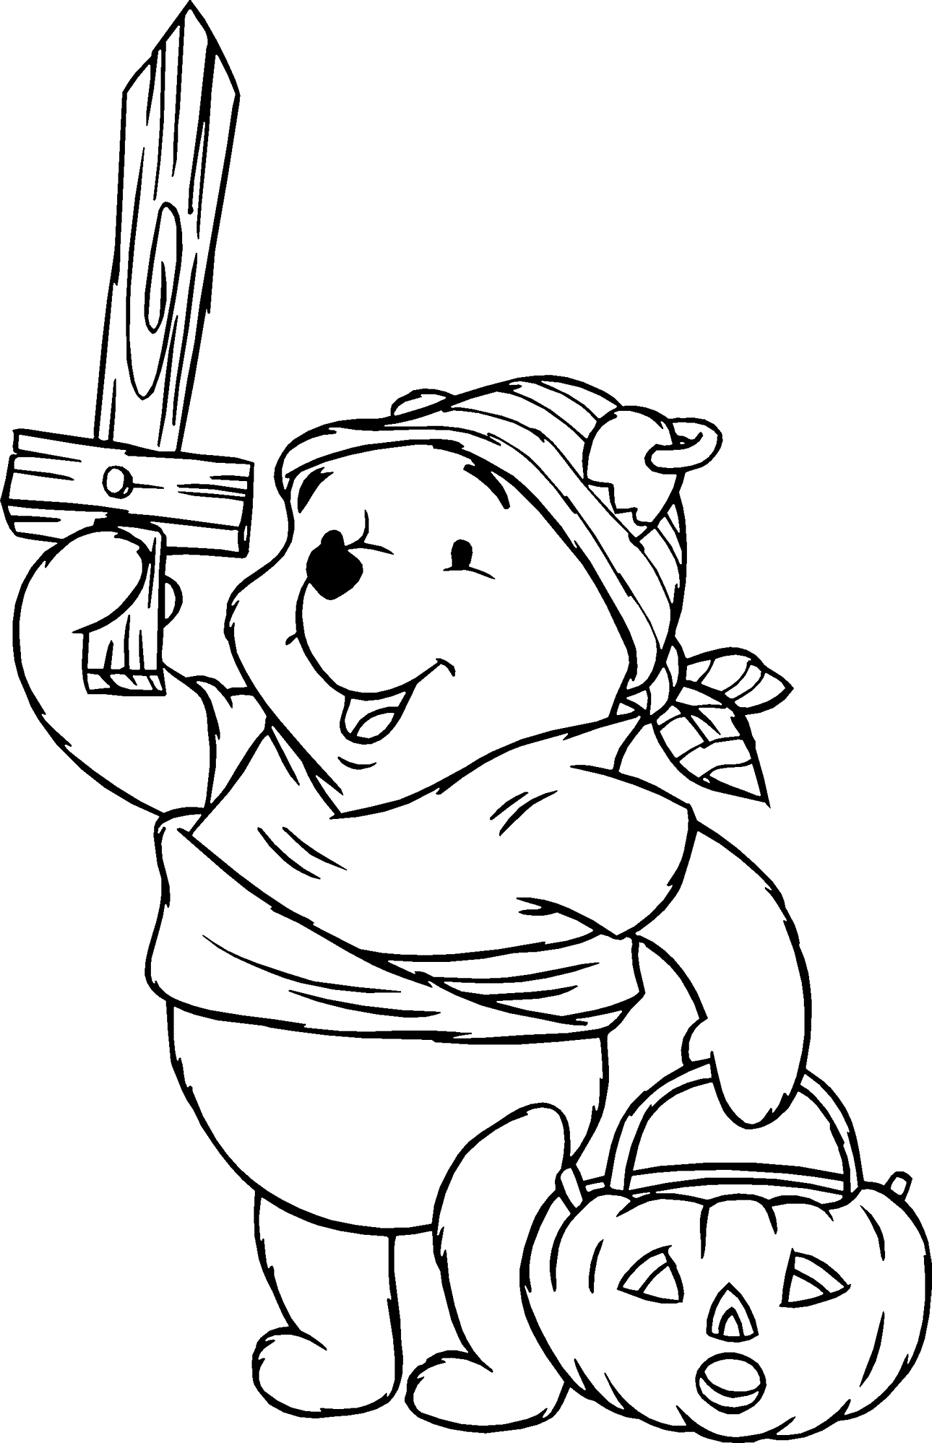 Halloween Pooh Pirate Costume Coloring Pages For Kids Free